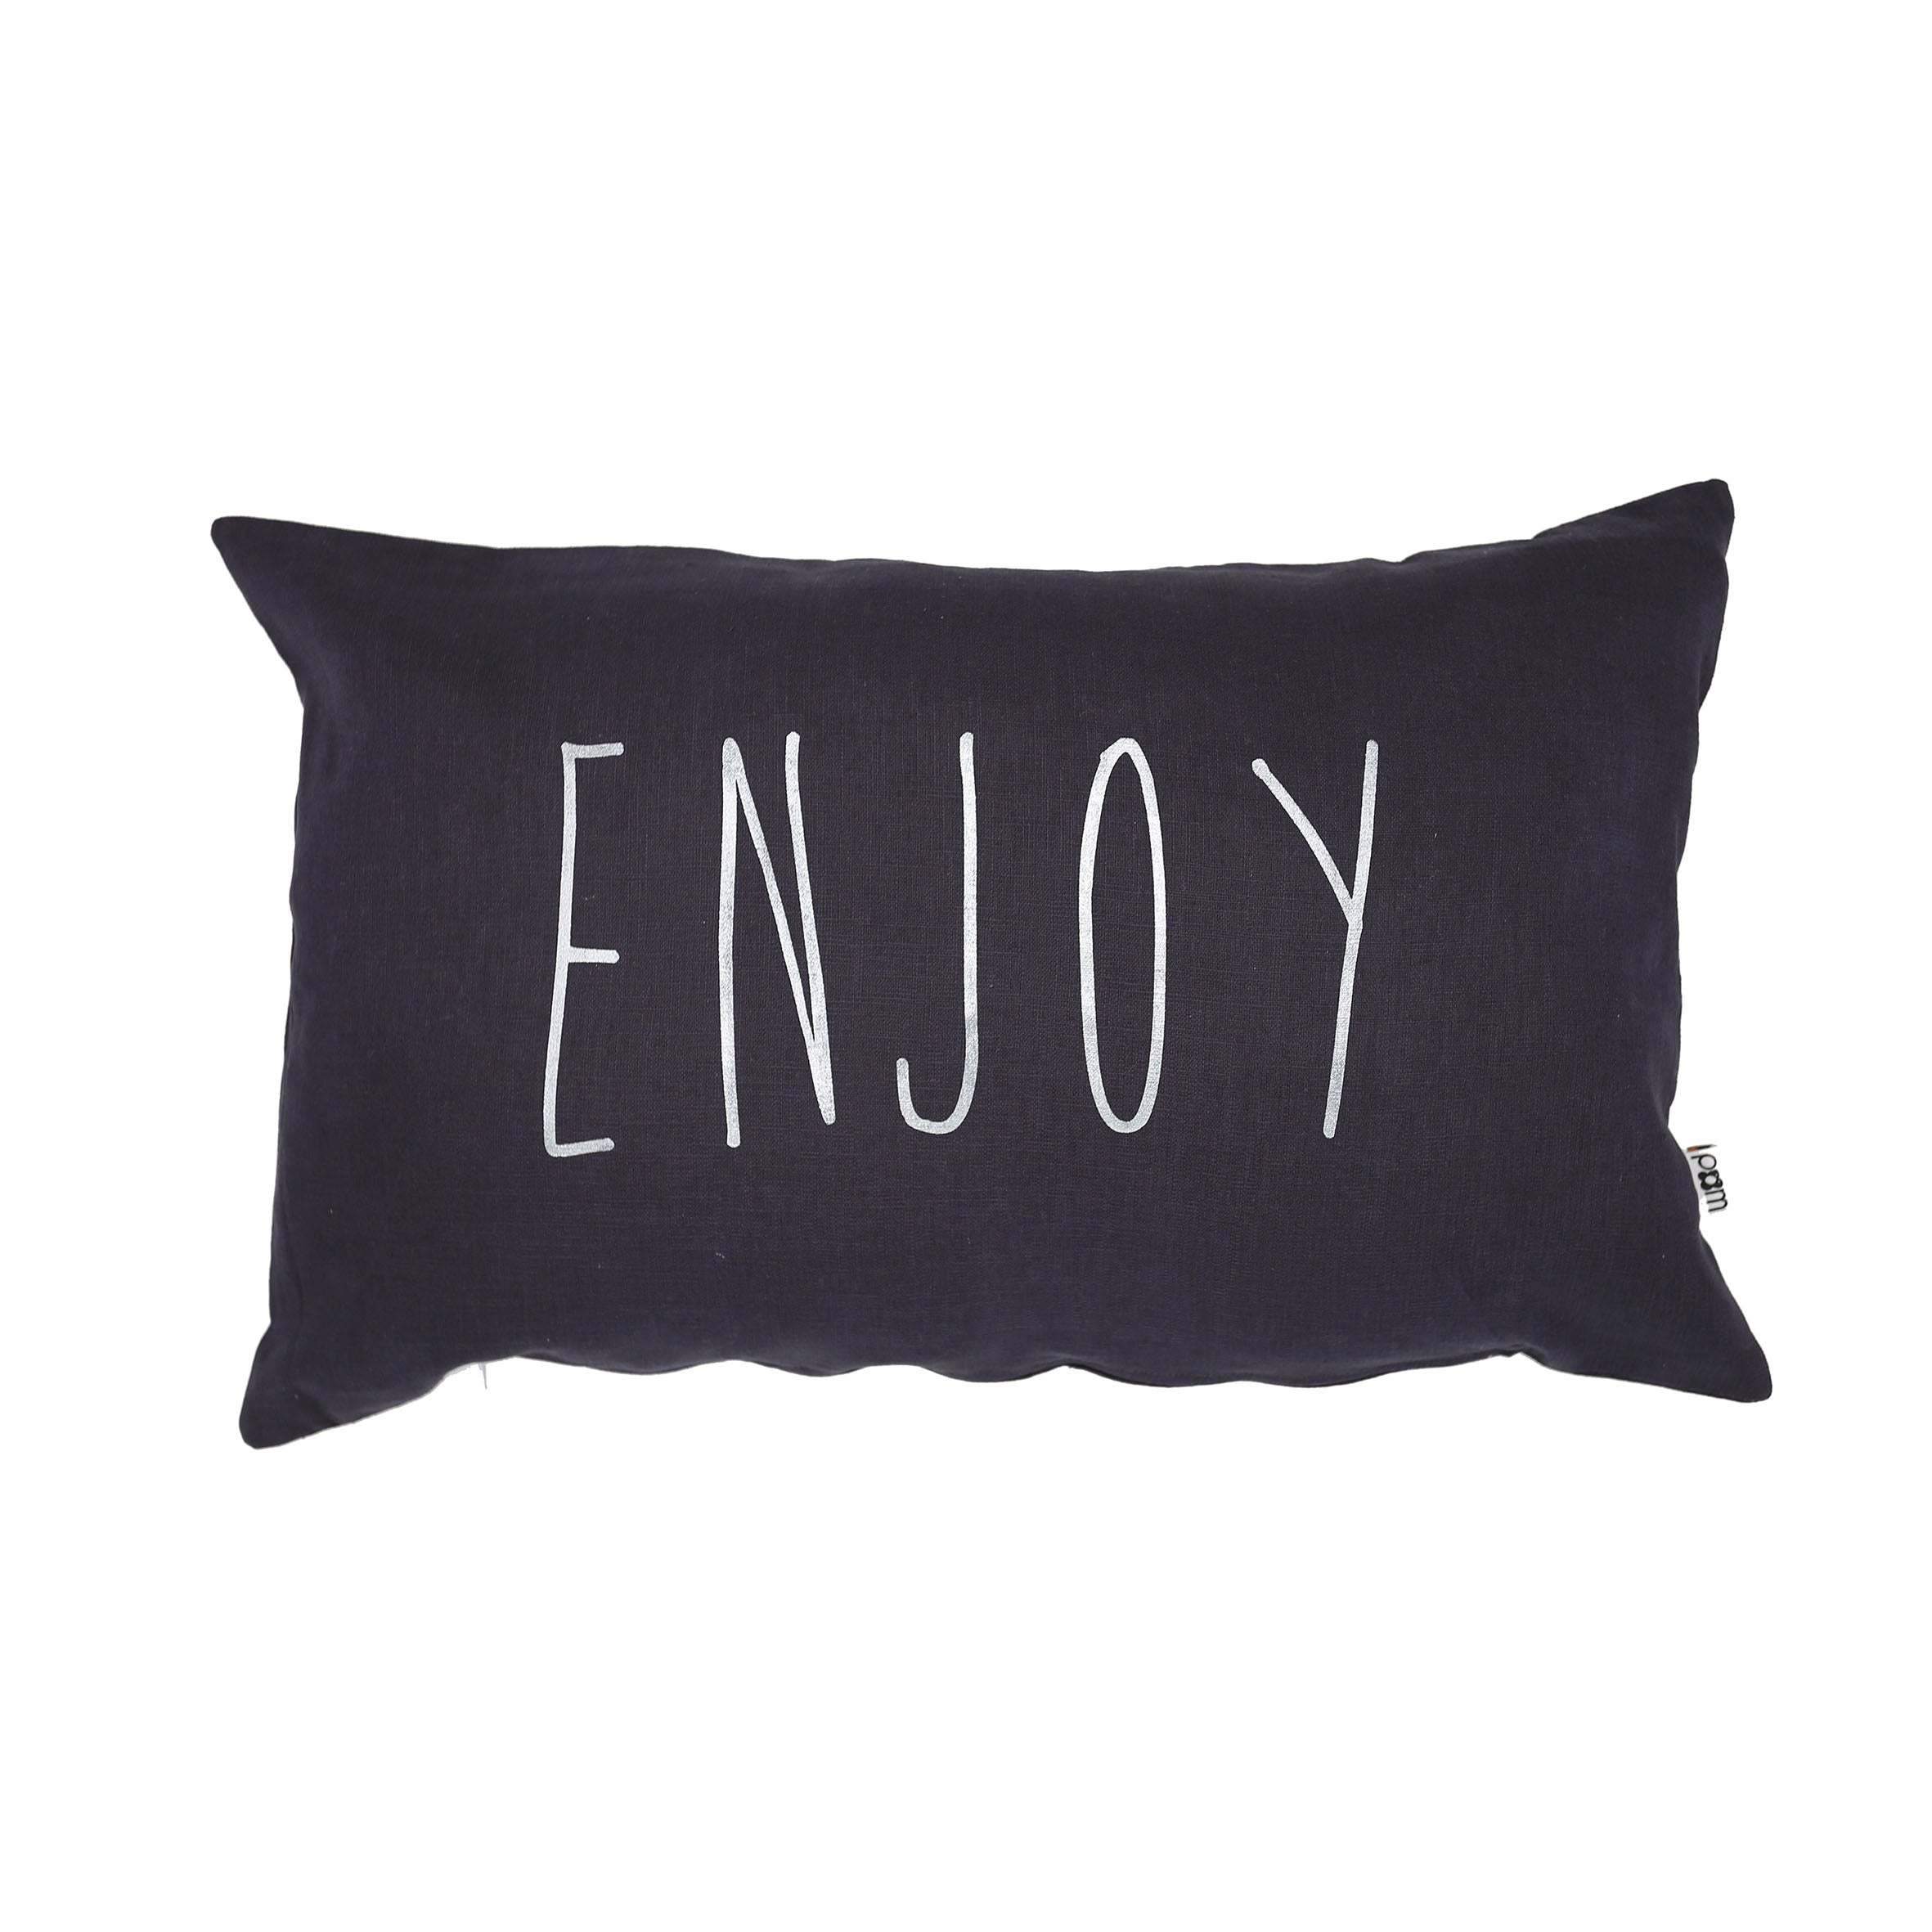 Handmade Cushion (Enjoy) - Charcoal Grey